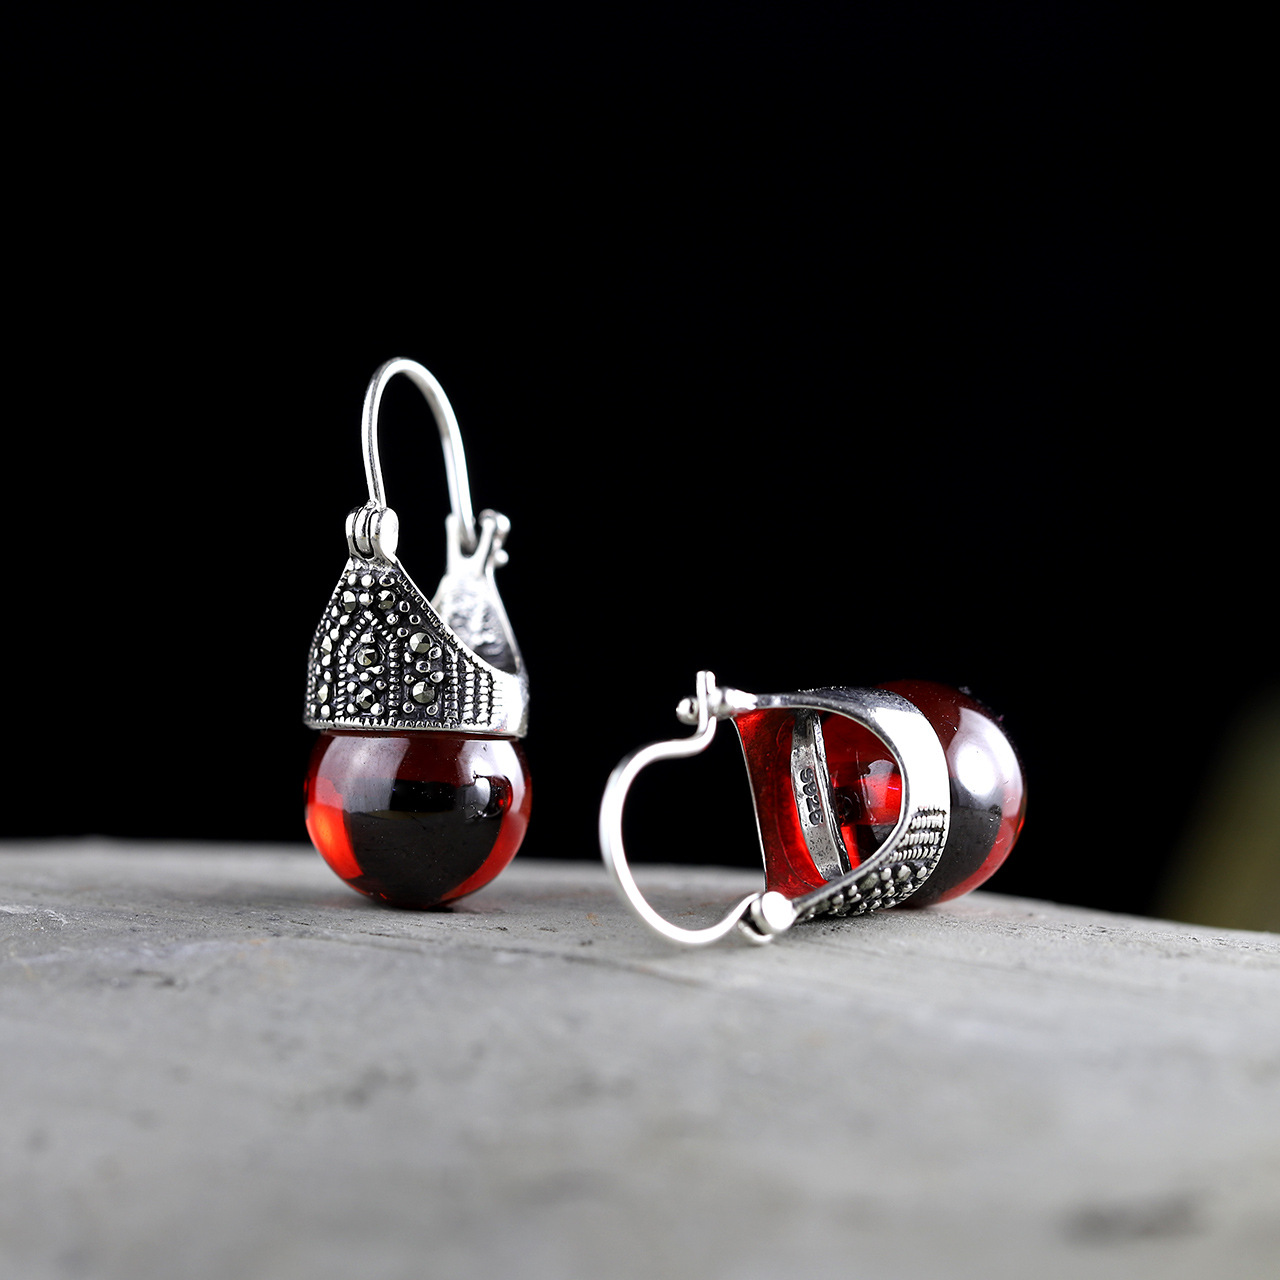 2018 New Limited Earings Fashion Jewelry Real 925 Sterling Silver Earrings For WomenWholesale Lady Elegant Garnet Ear Clip 2018 New Limited Earings Fashion Jewelry Real 925 Sterling Silver Earrings For WomenWholesale Lady Elegant Garnet Ear Clip